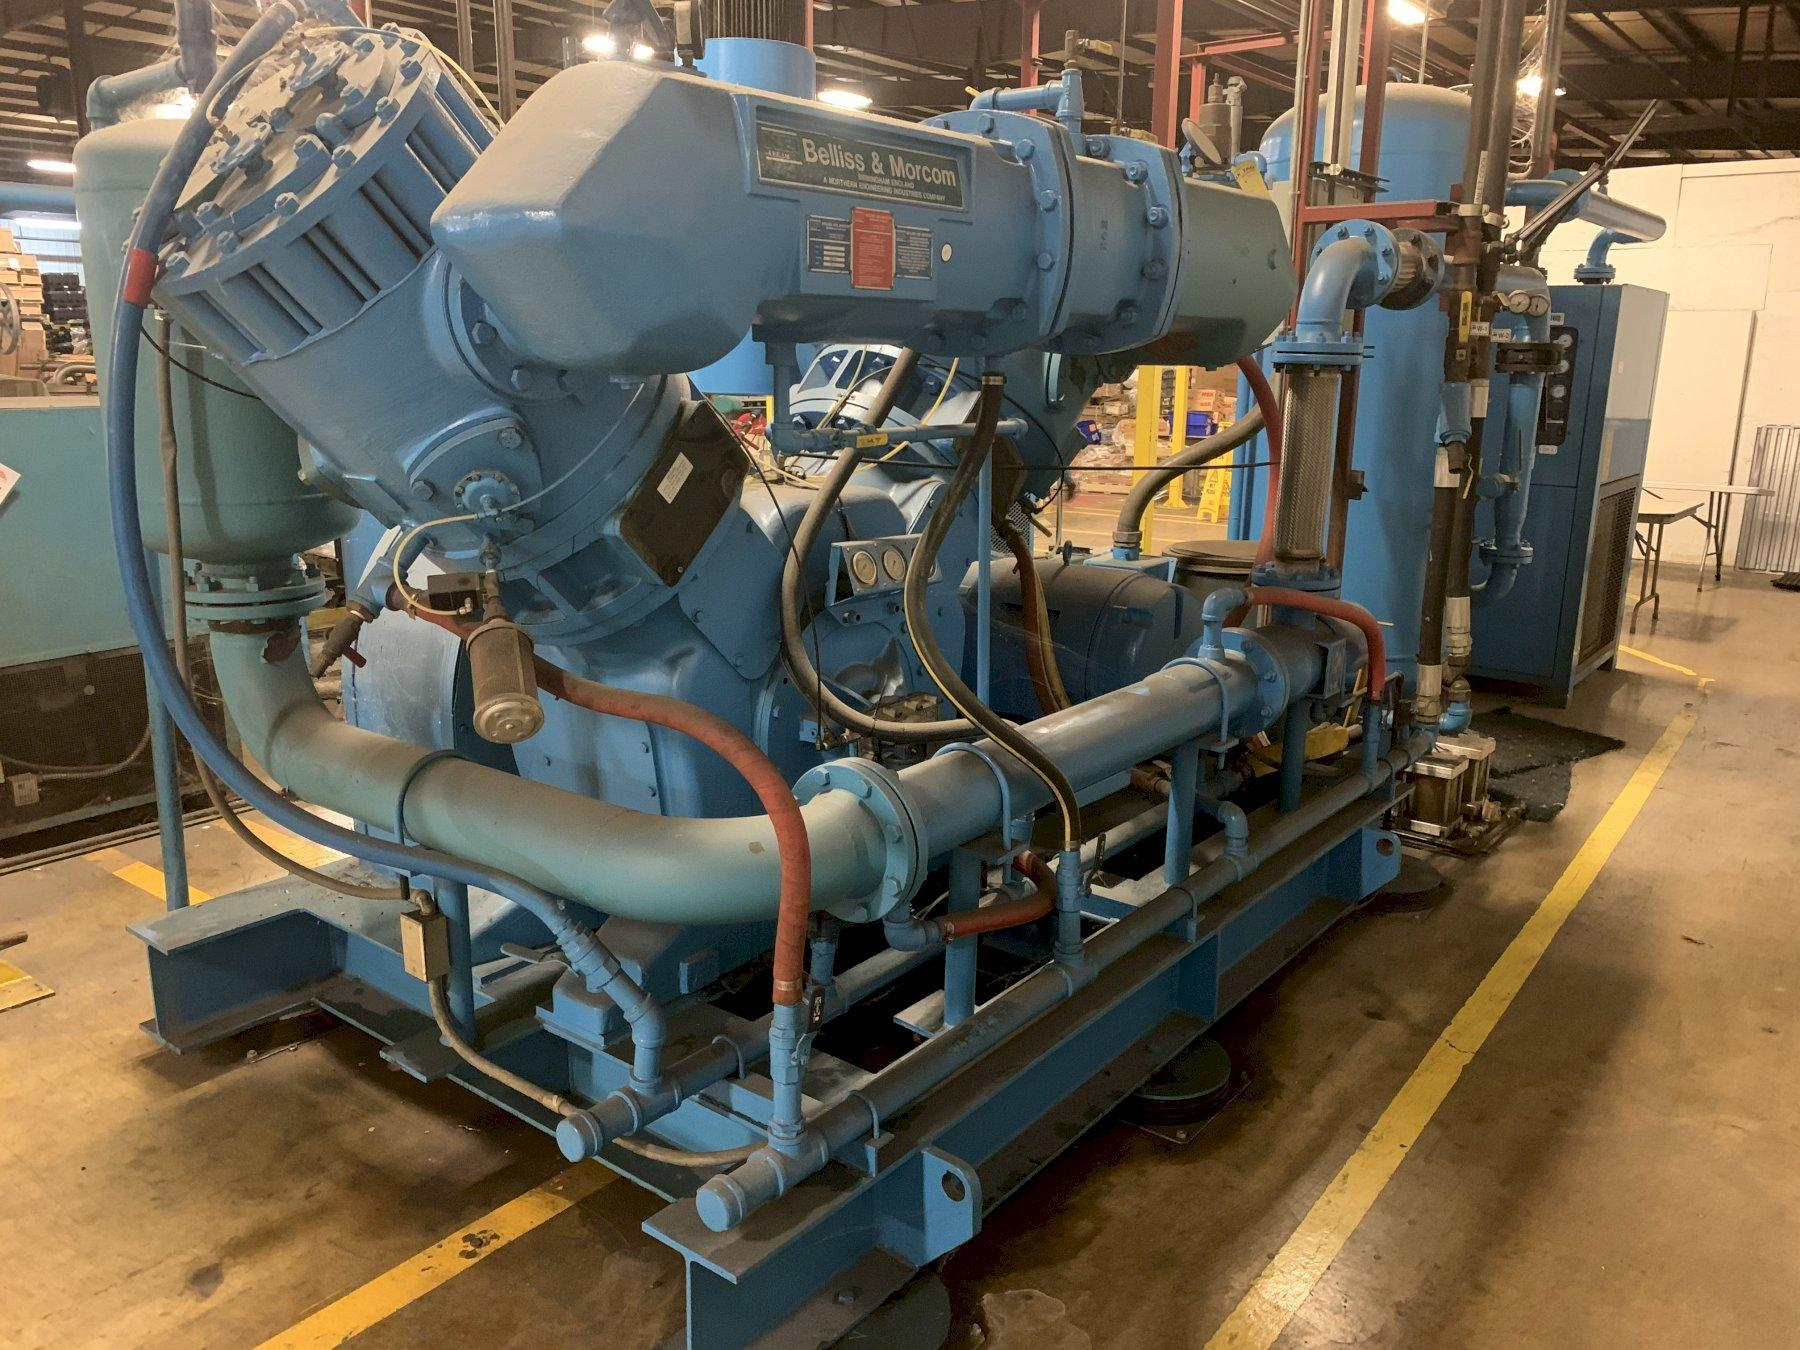 200 HP NEI BELLISS & MORCOM AIR COMPRESSOR WITH HANKINSON AIR DRYER SYSTEM: STOCK 11461